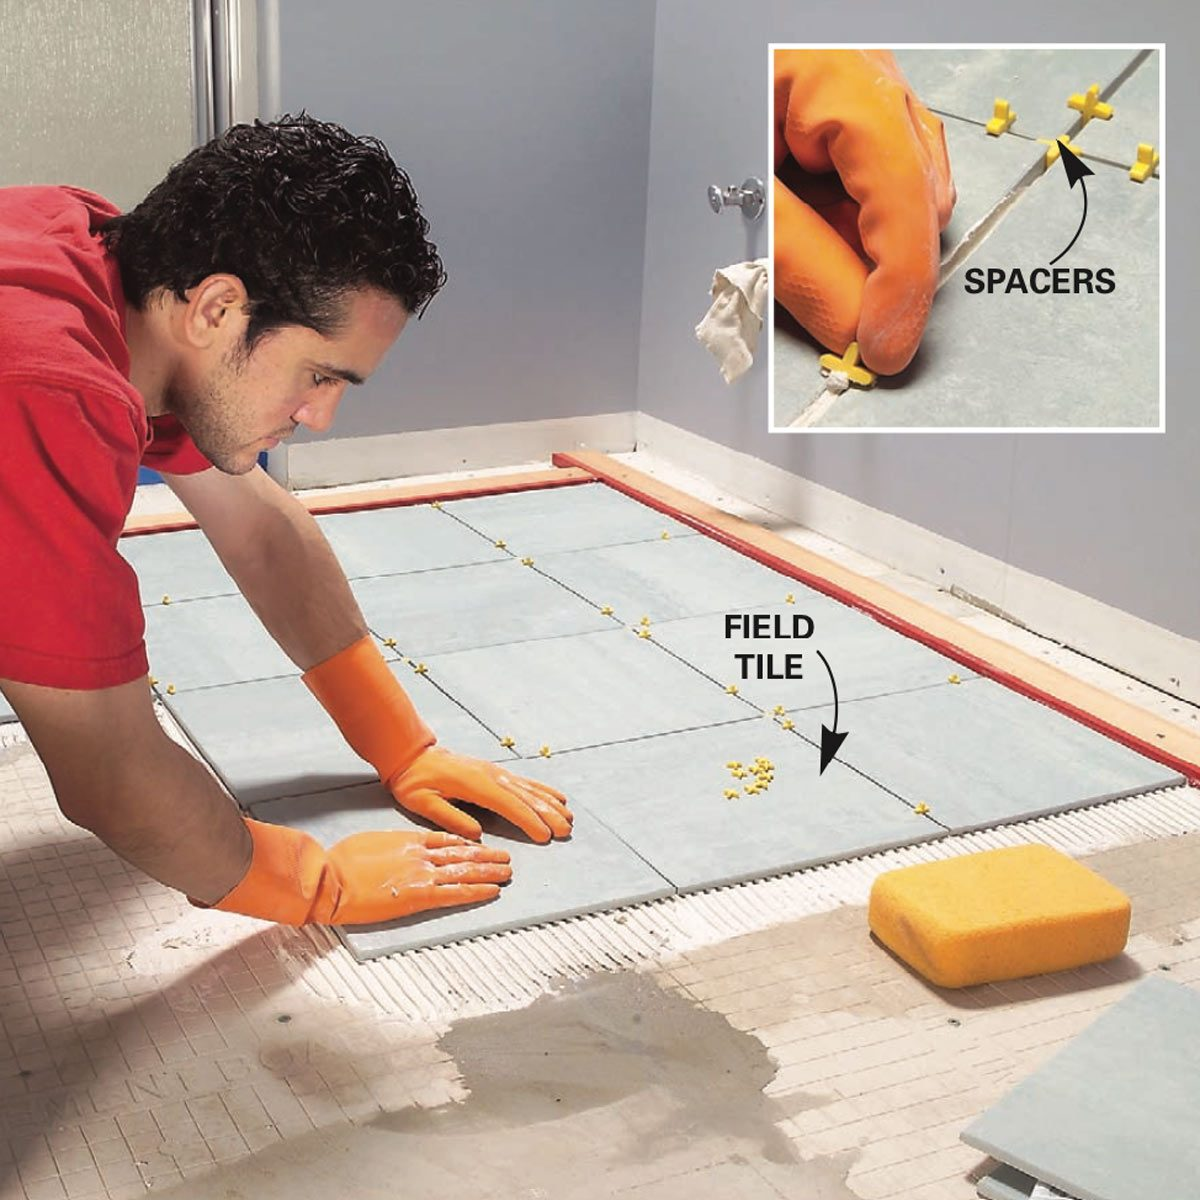 How to lay tile install a ceramic tile floor in the bathroom - Tile installation bathroom floor ...